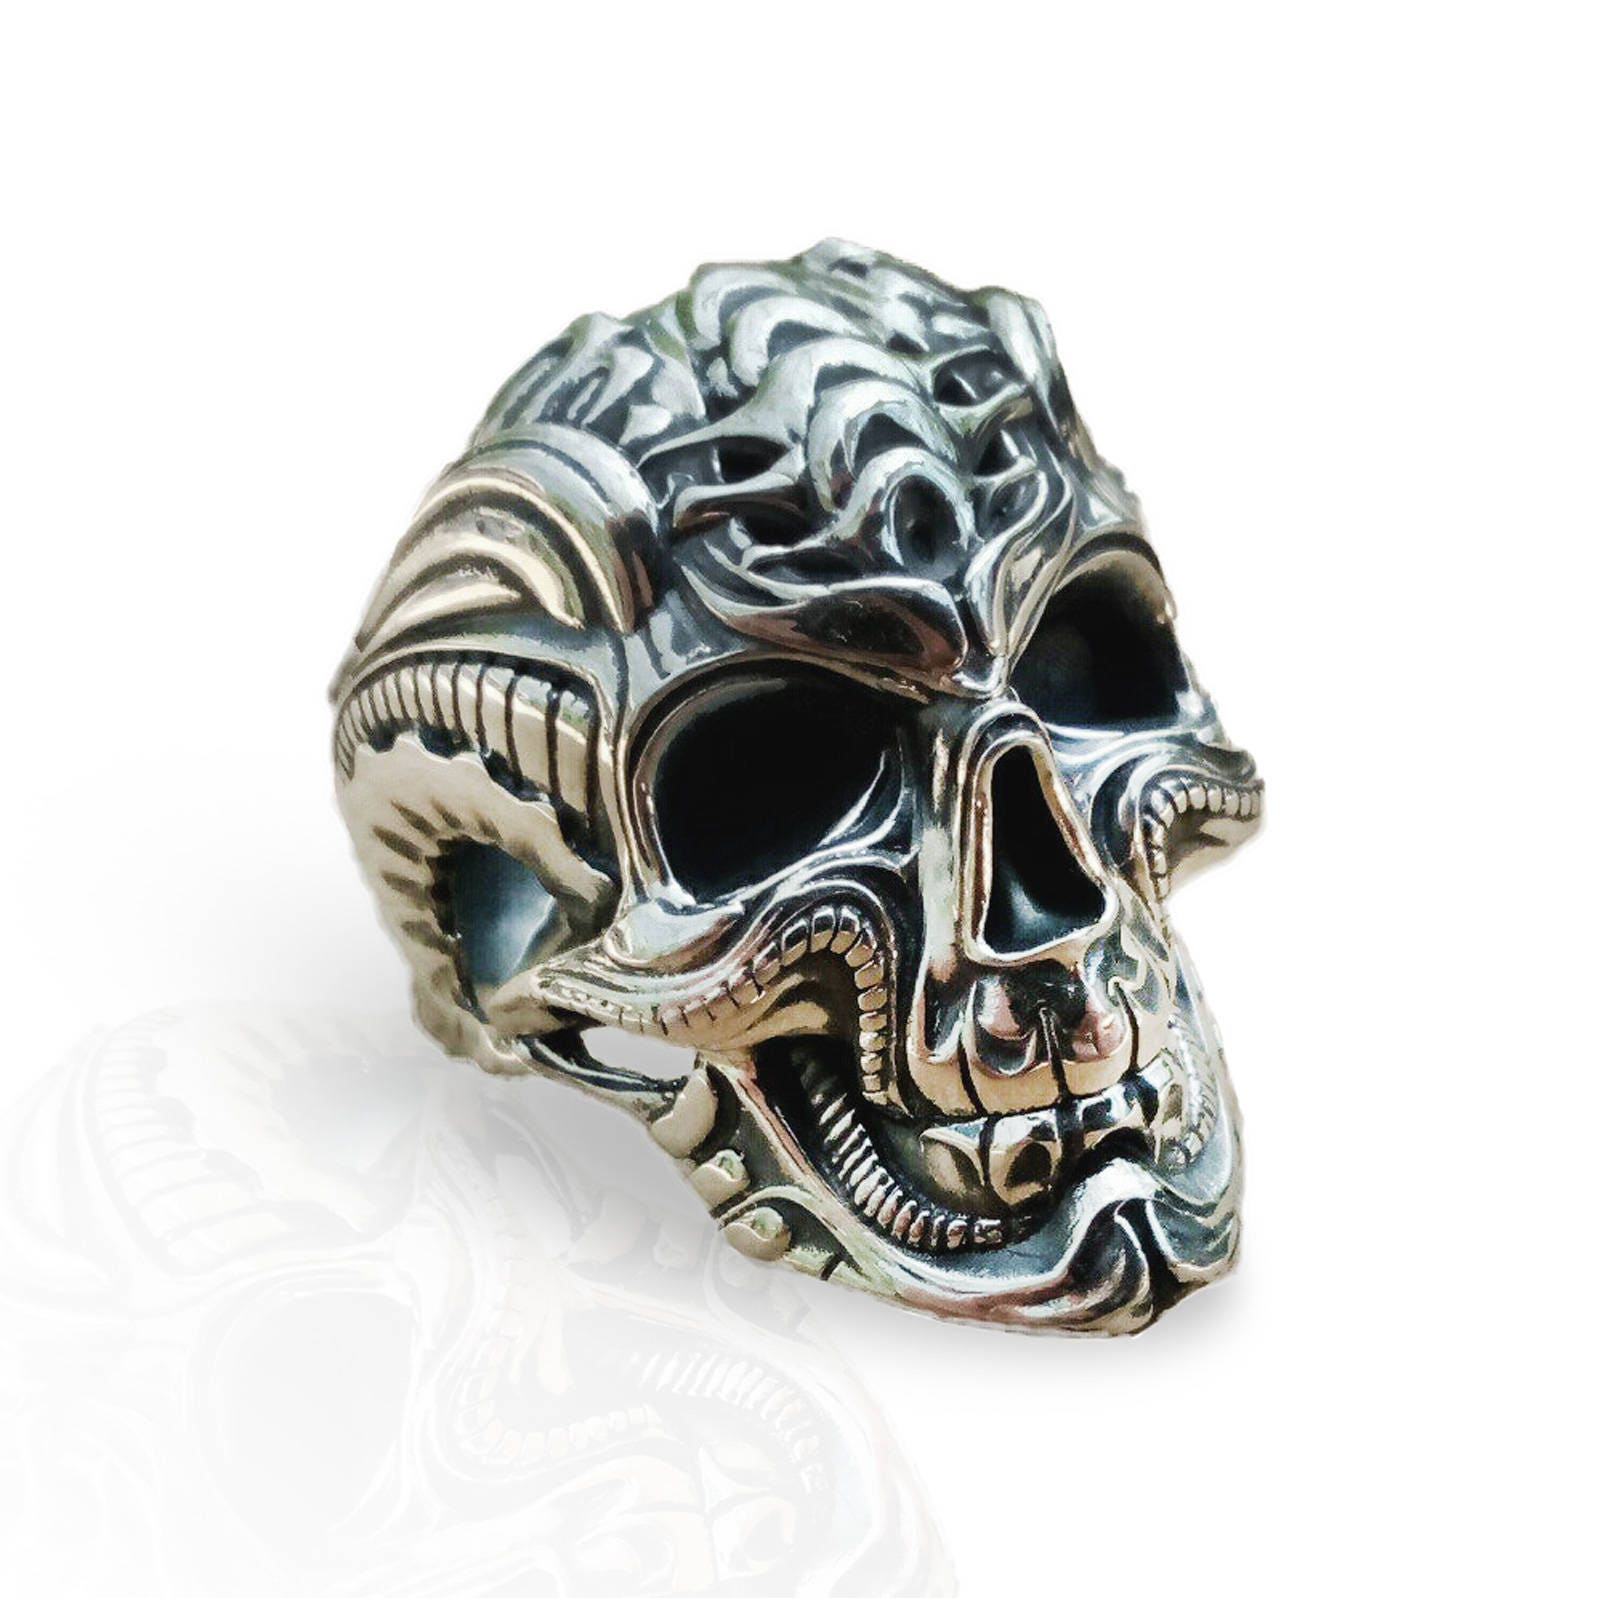 steel manufacturers for skeleton rings com at skull new alibaba suppliers and stainless style showroom